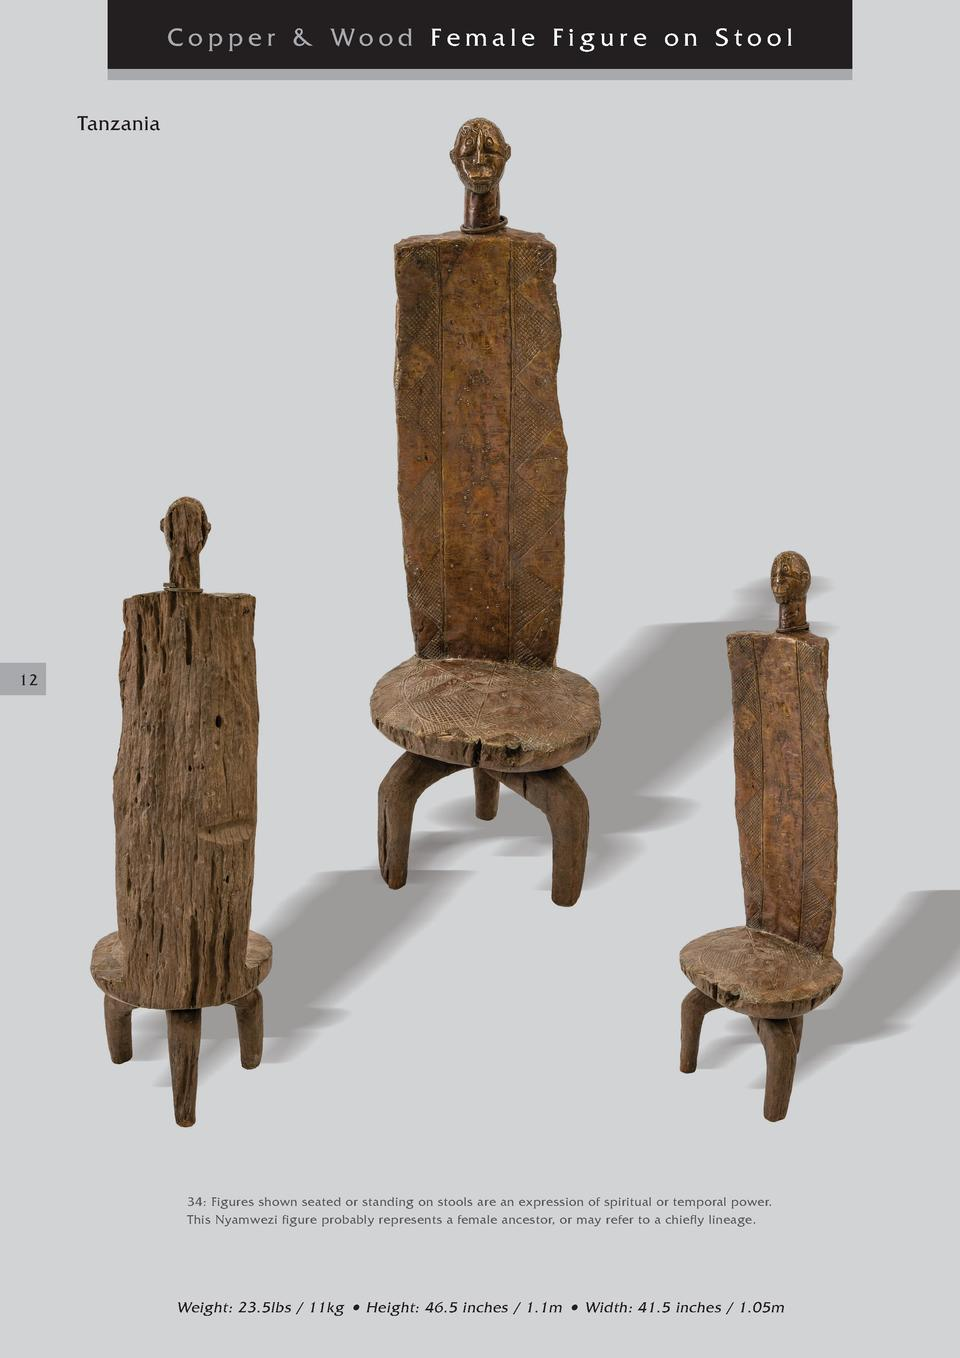 Copper   Wood Female Figure on Stool Tanzania  12  34  Figures shown seated or standing on stools are an expression of spi...